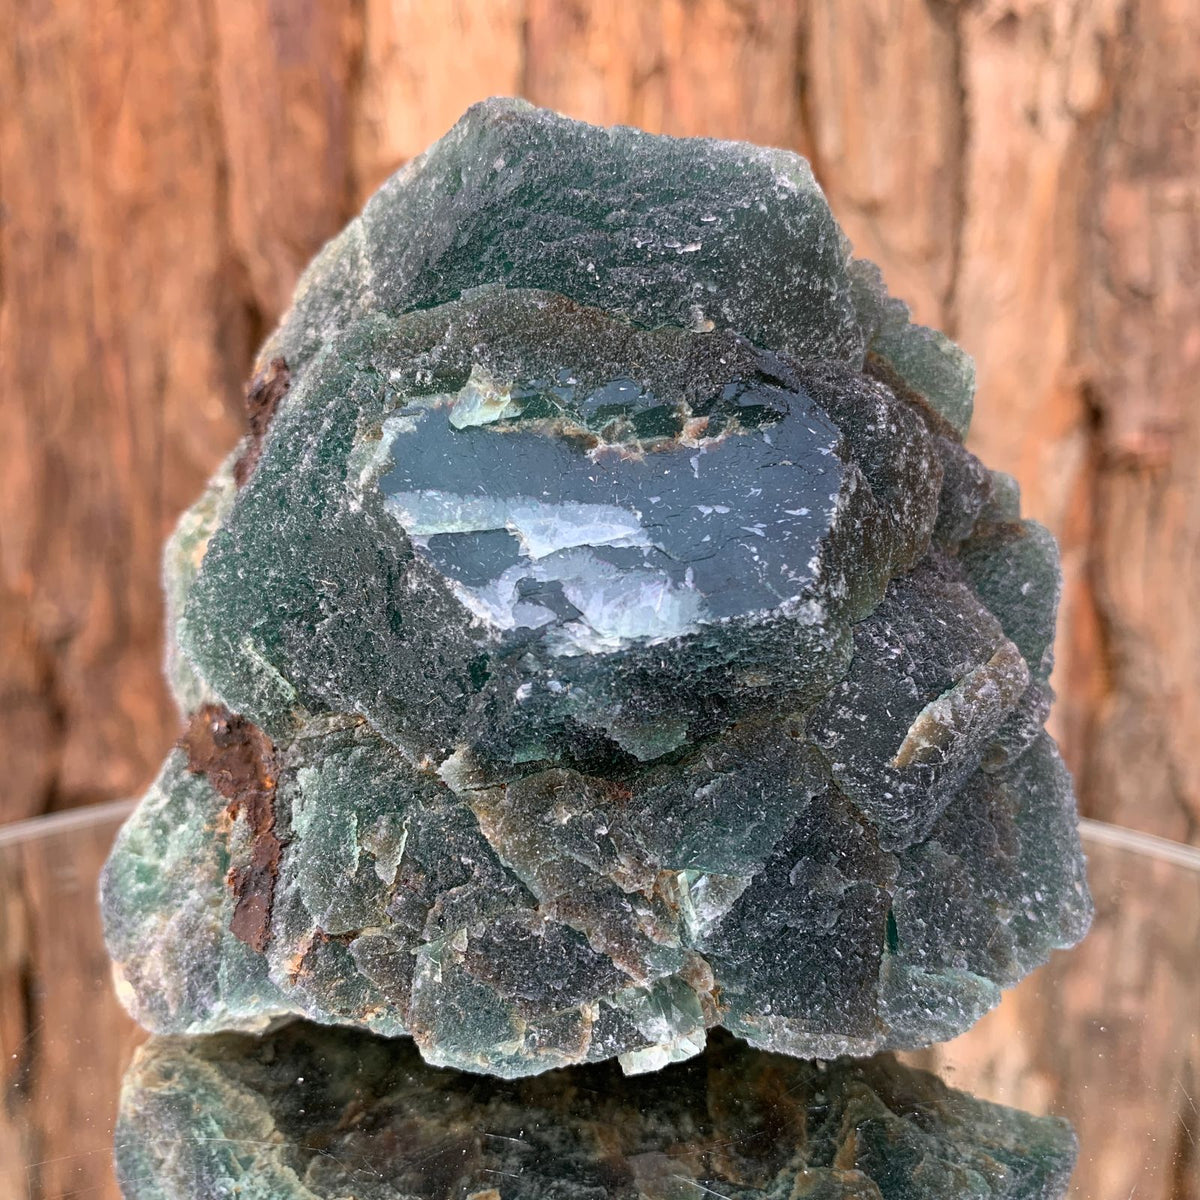 9.5cm 598g Green Fluorite from Heilongjiang, China